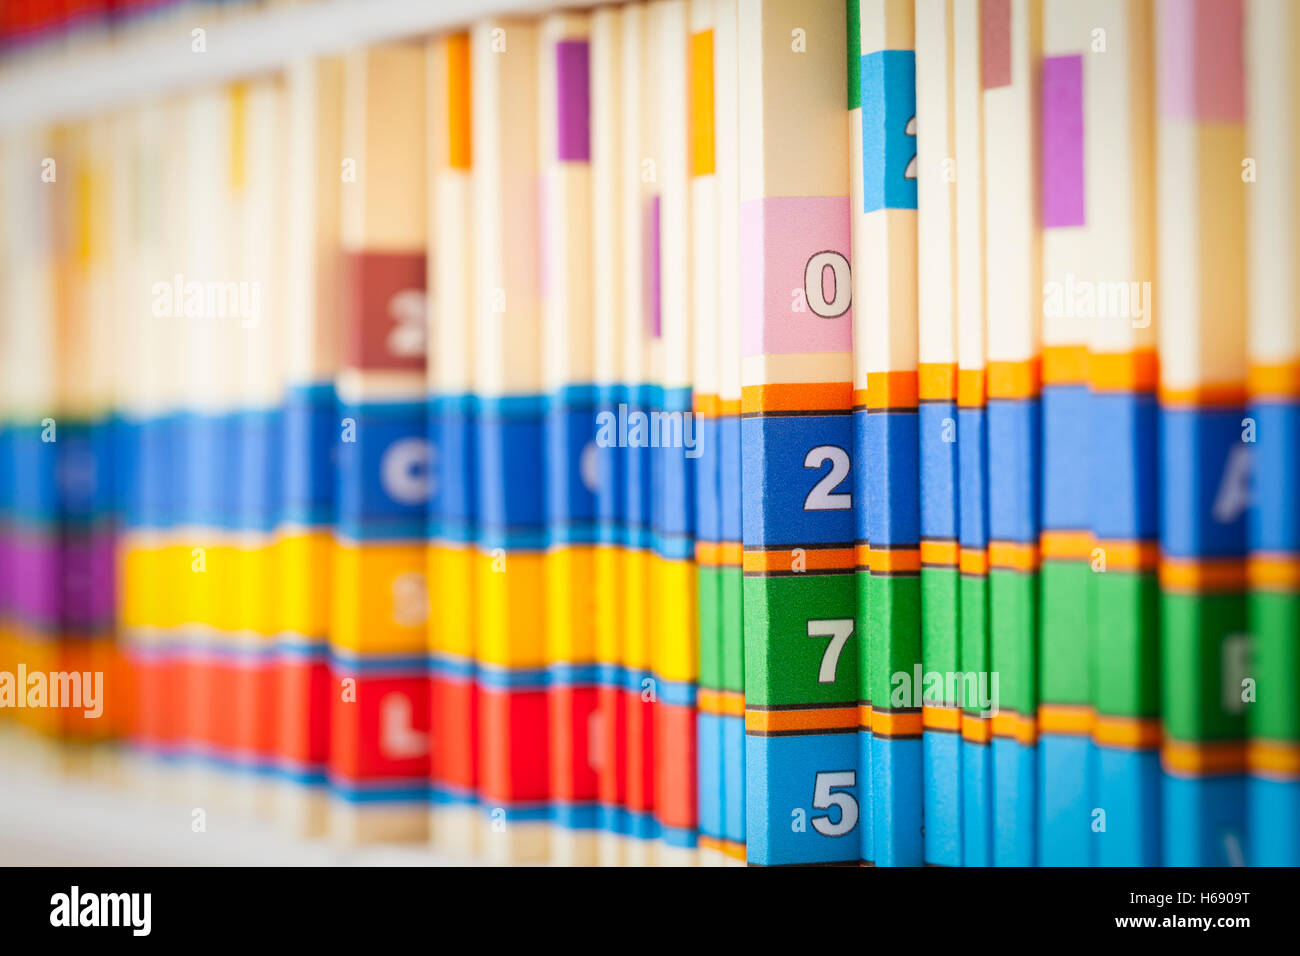 Medical Files on Shelves in Office Setting. - Stock Image